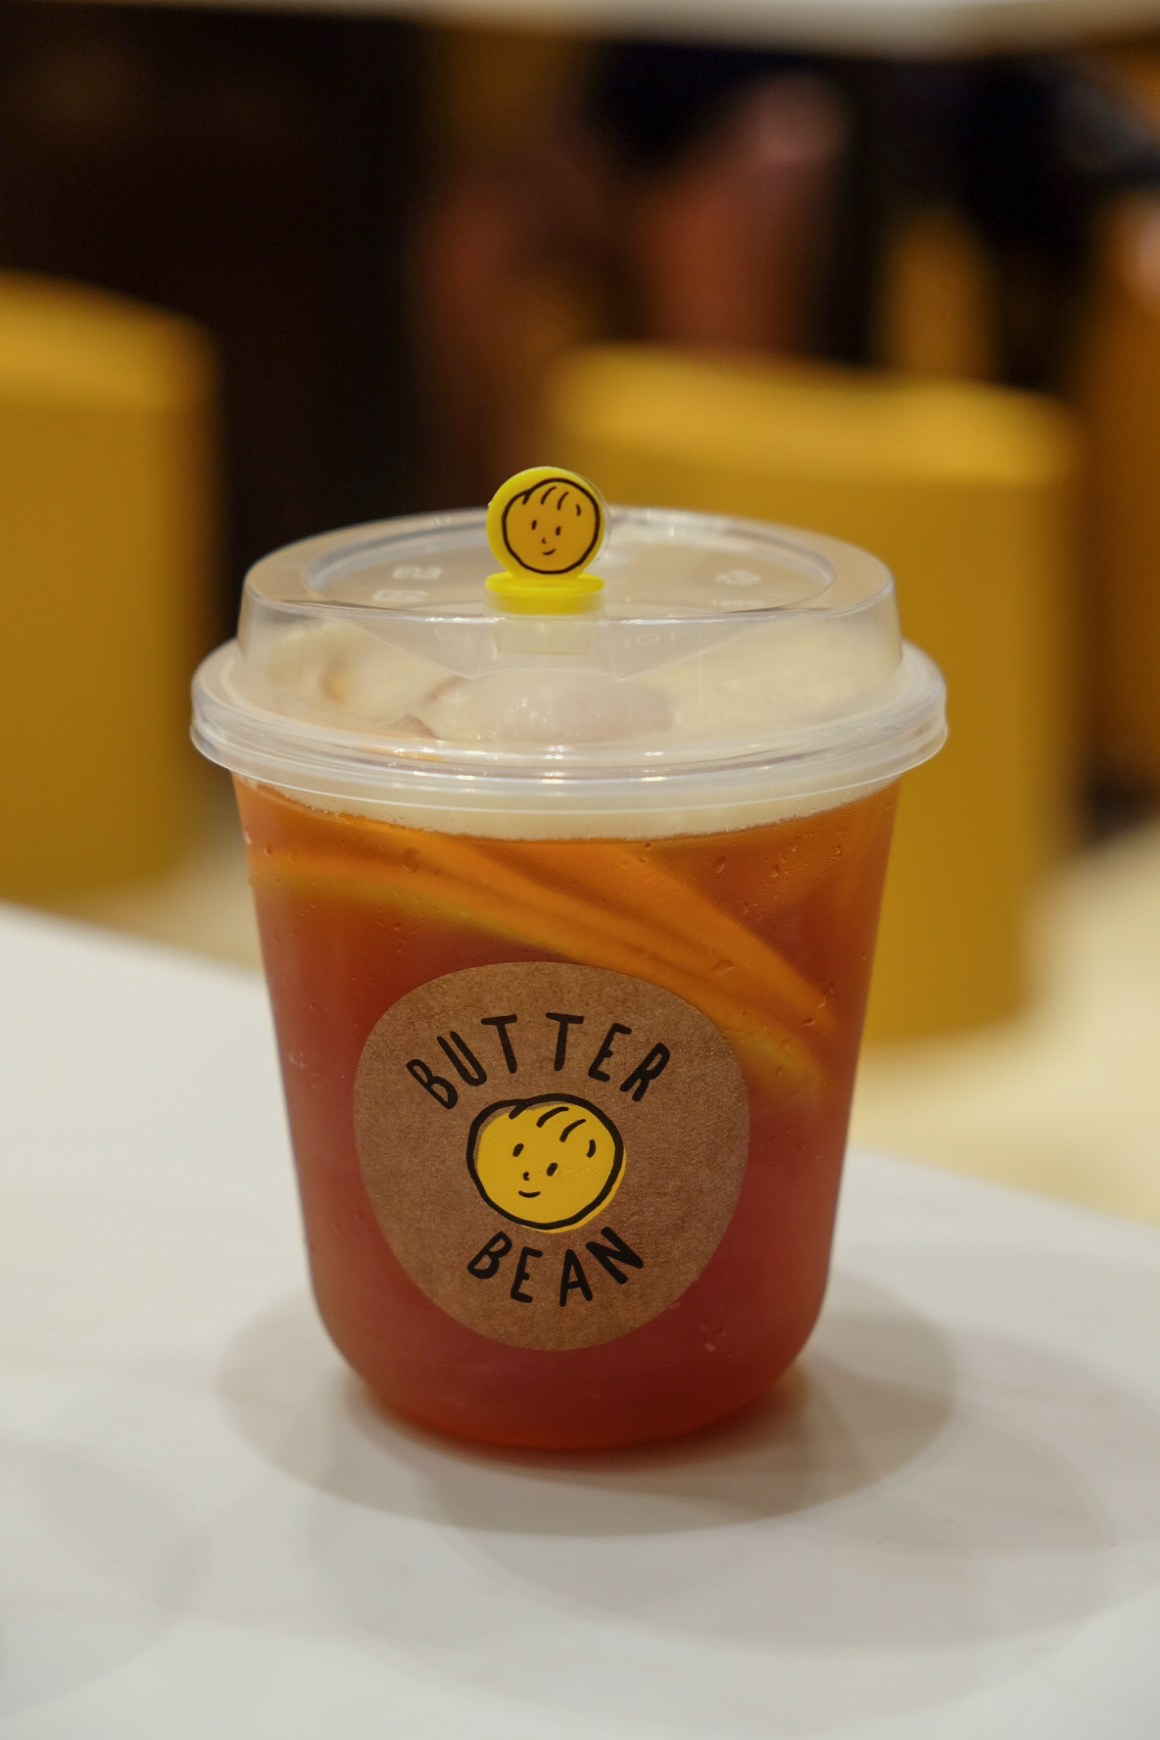 Butter Bean @ VivoCity, Kopi & Toast With A Twist - Lychee Orange Tea